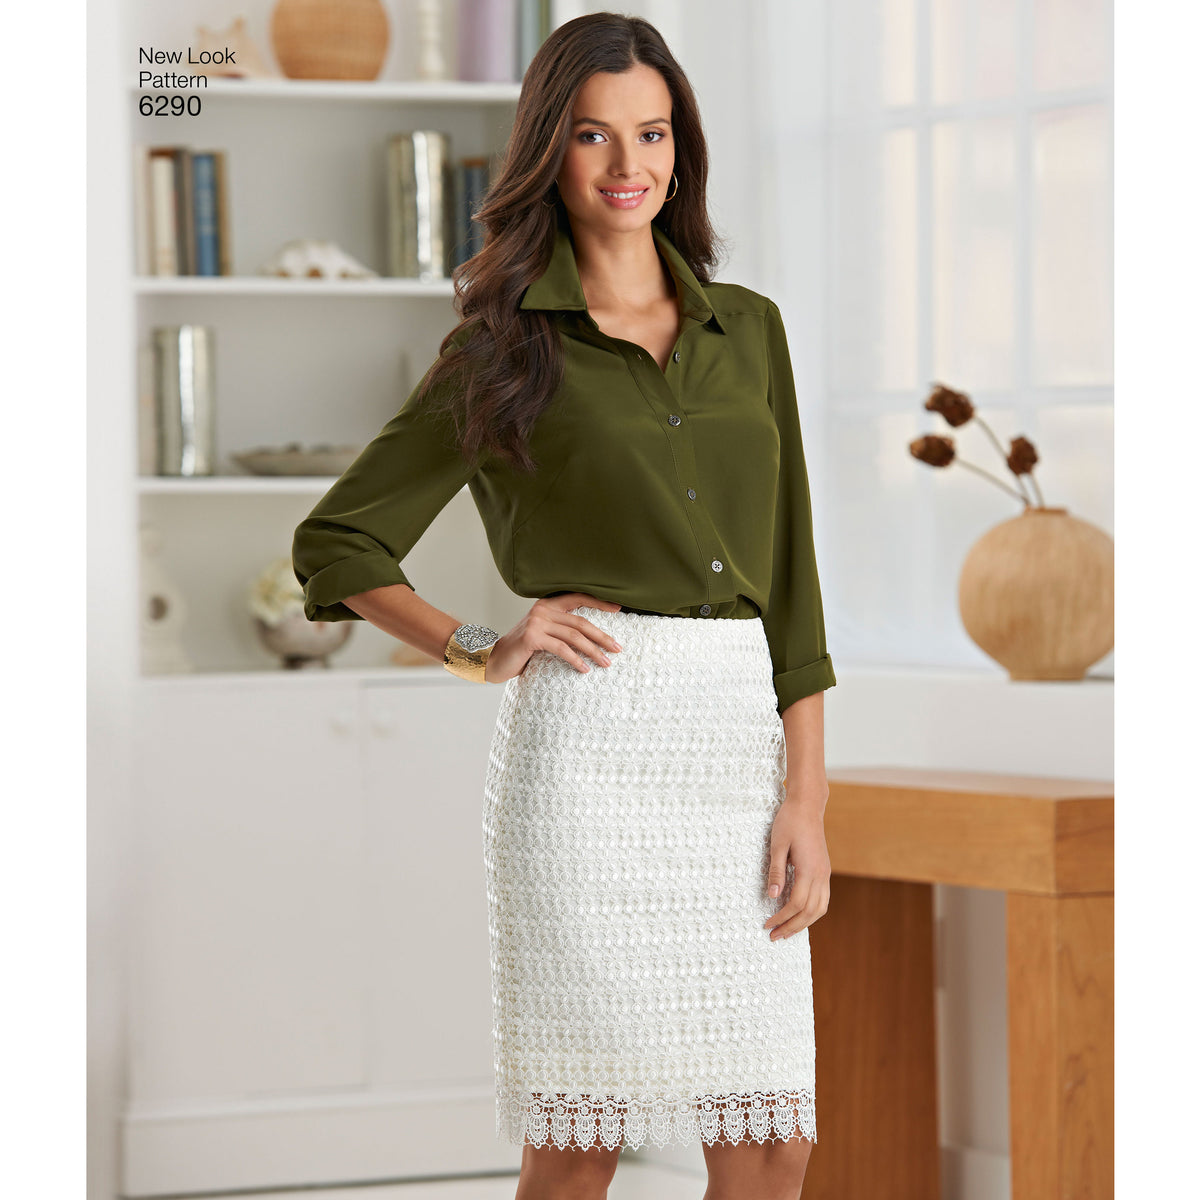 6290 Misses' Shorts, Skirt in Two Lengths and Slim Pants